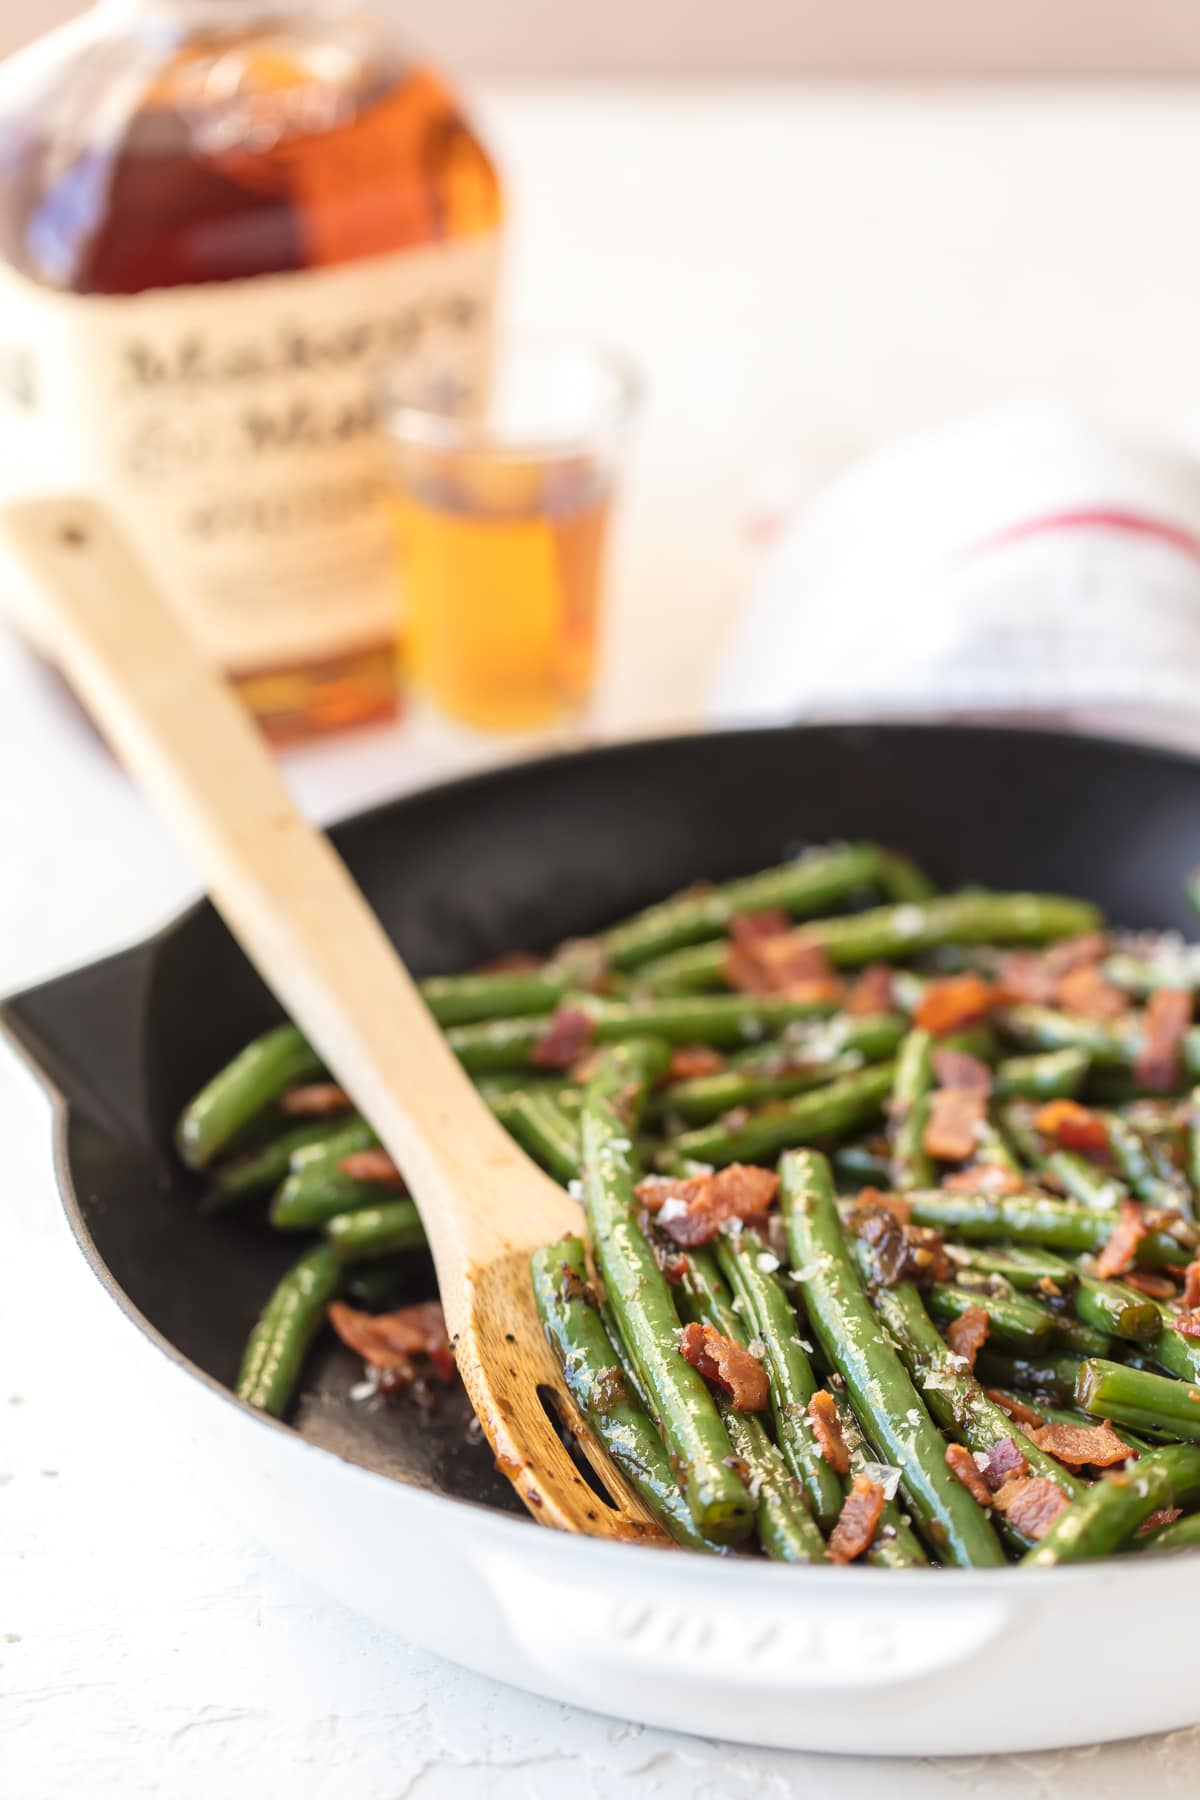 Bourbon Green Beans in a skillet